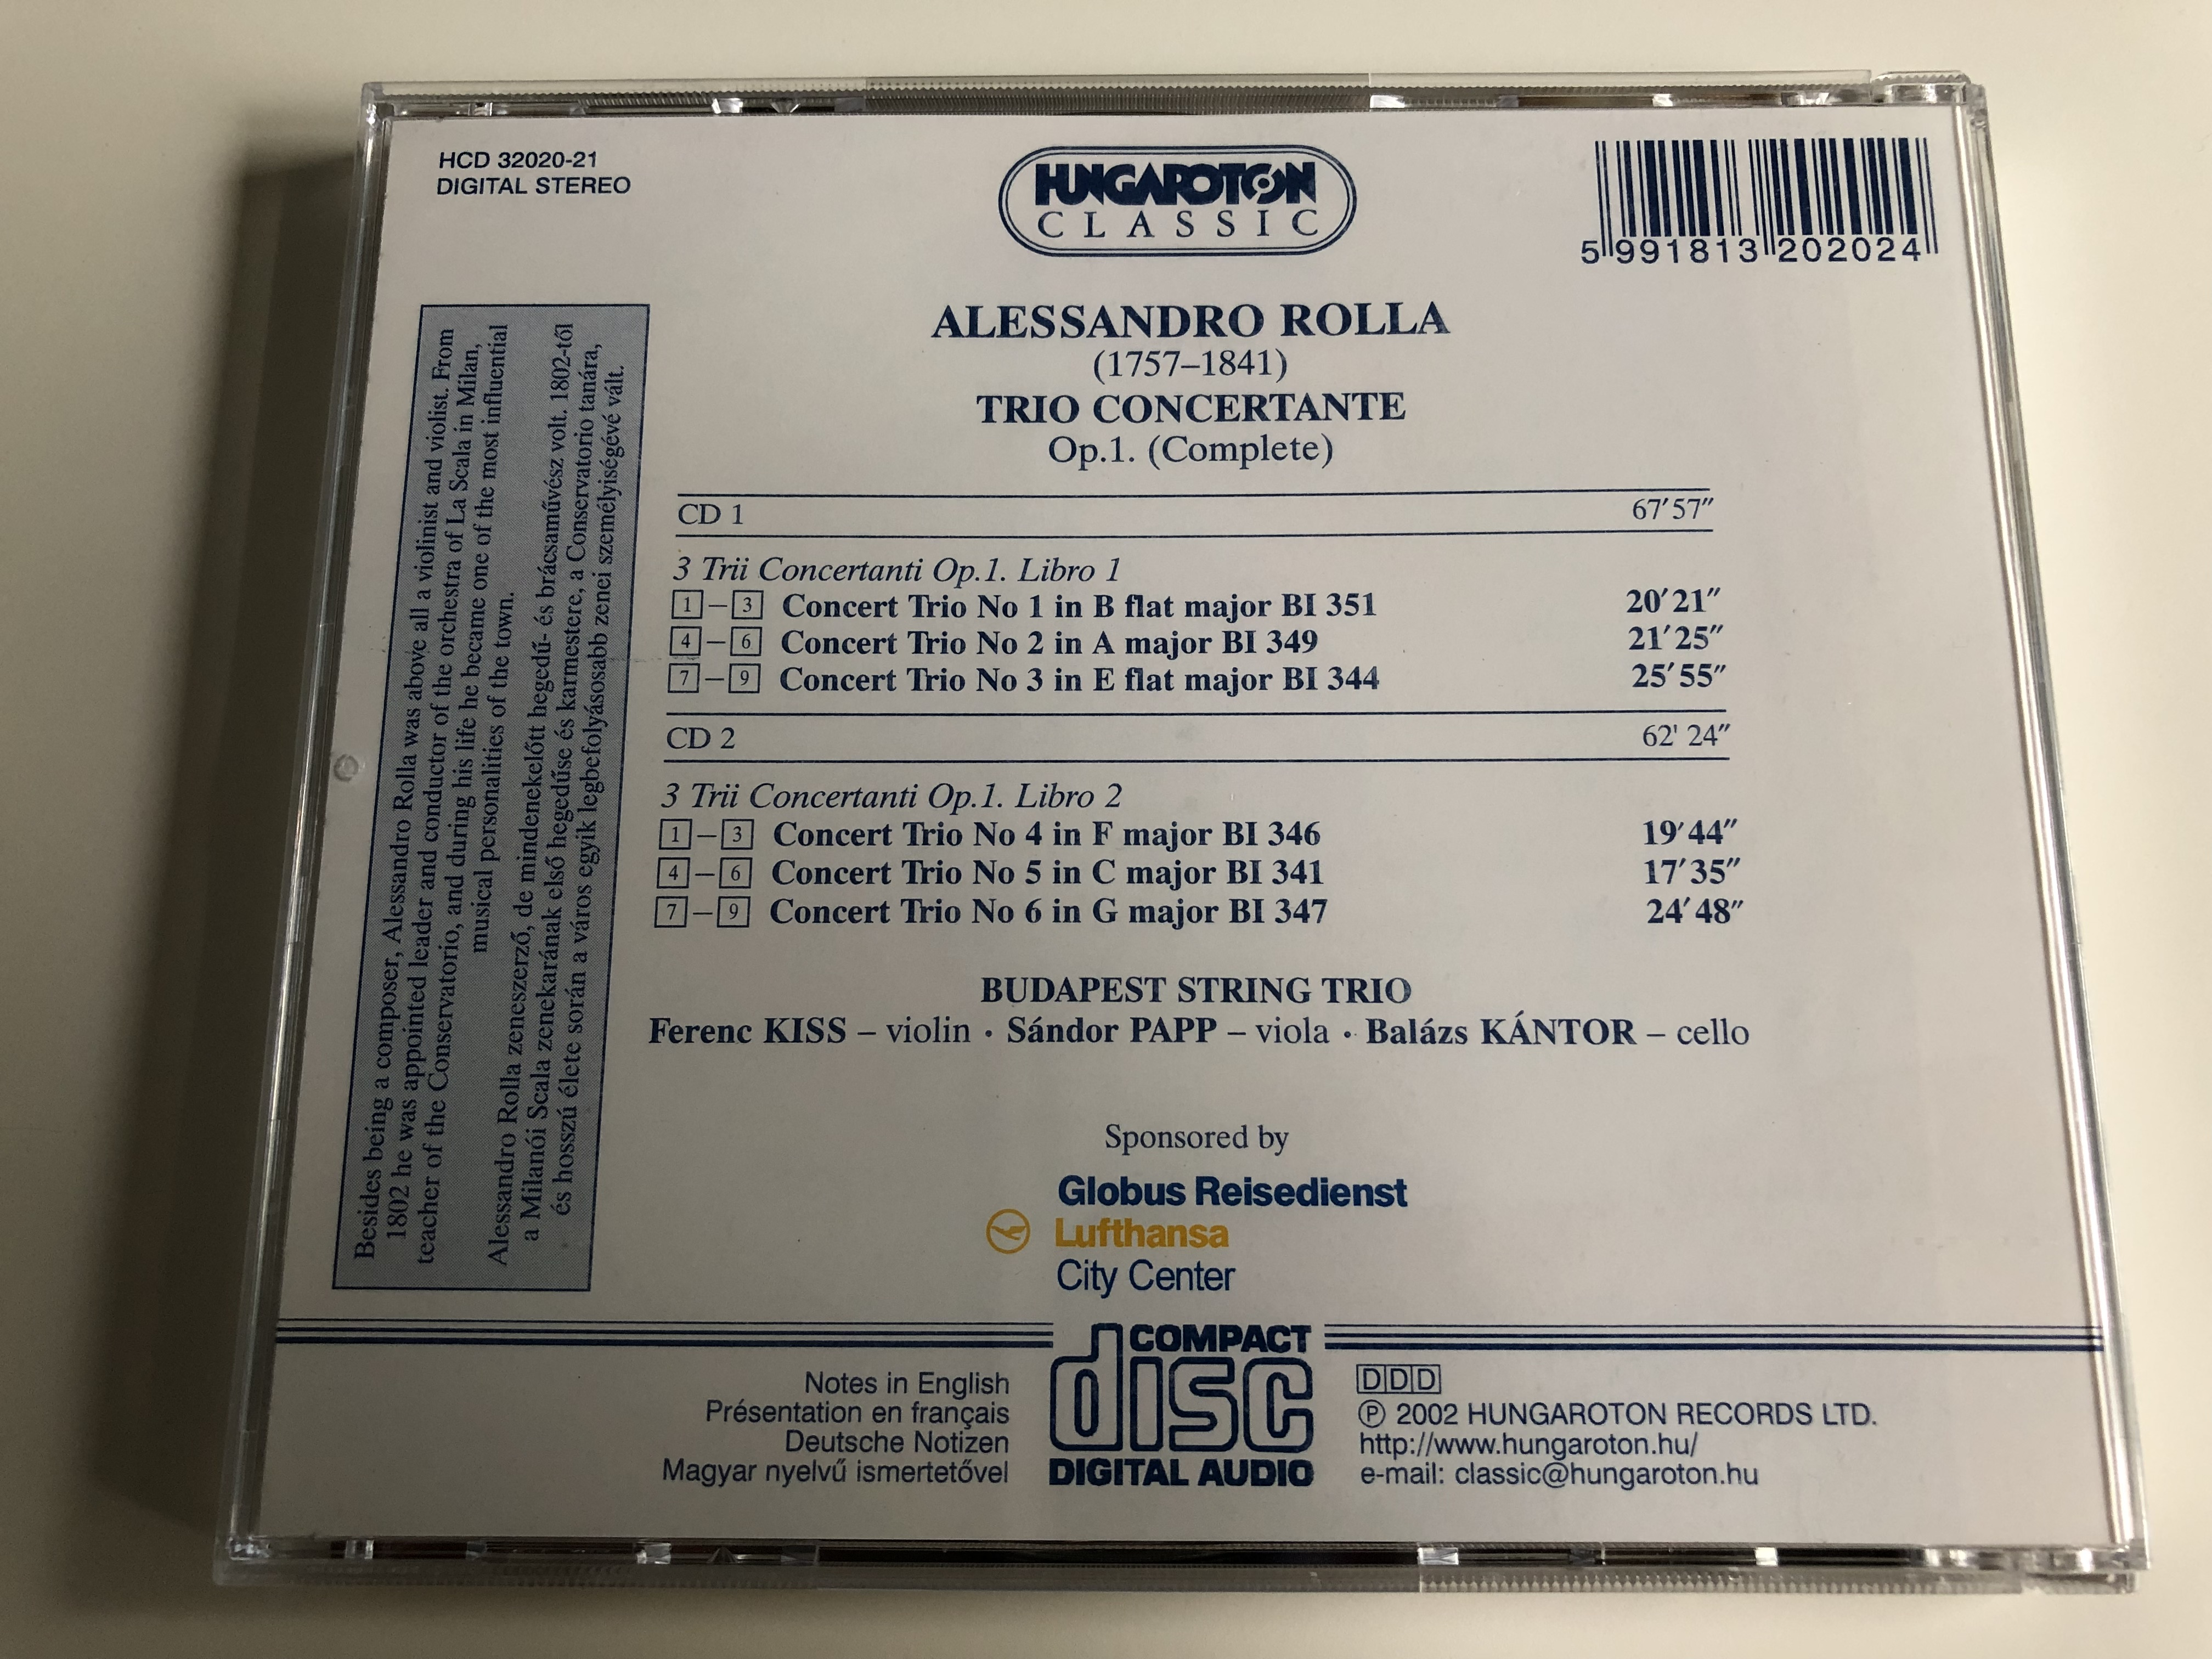 alessandro-rolla-trio-concertante-op.-1-complete-audio-cd-set-2002-budapest-string-trio-ferenc-kiss-violin-s-ndor-papp-viola-bal-zs-k-ntor-cello-hungaroton-classic-hcd-32020-21-9-.jpg